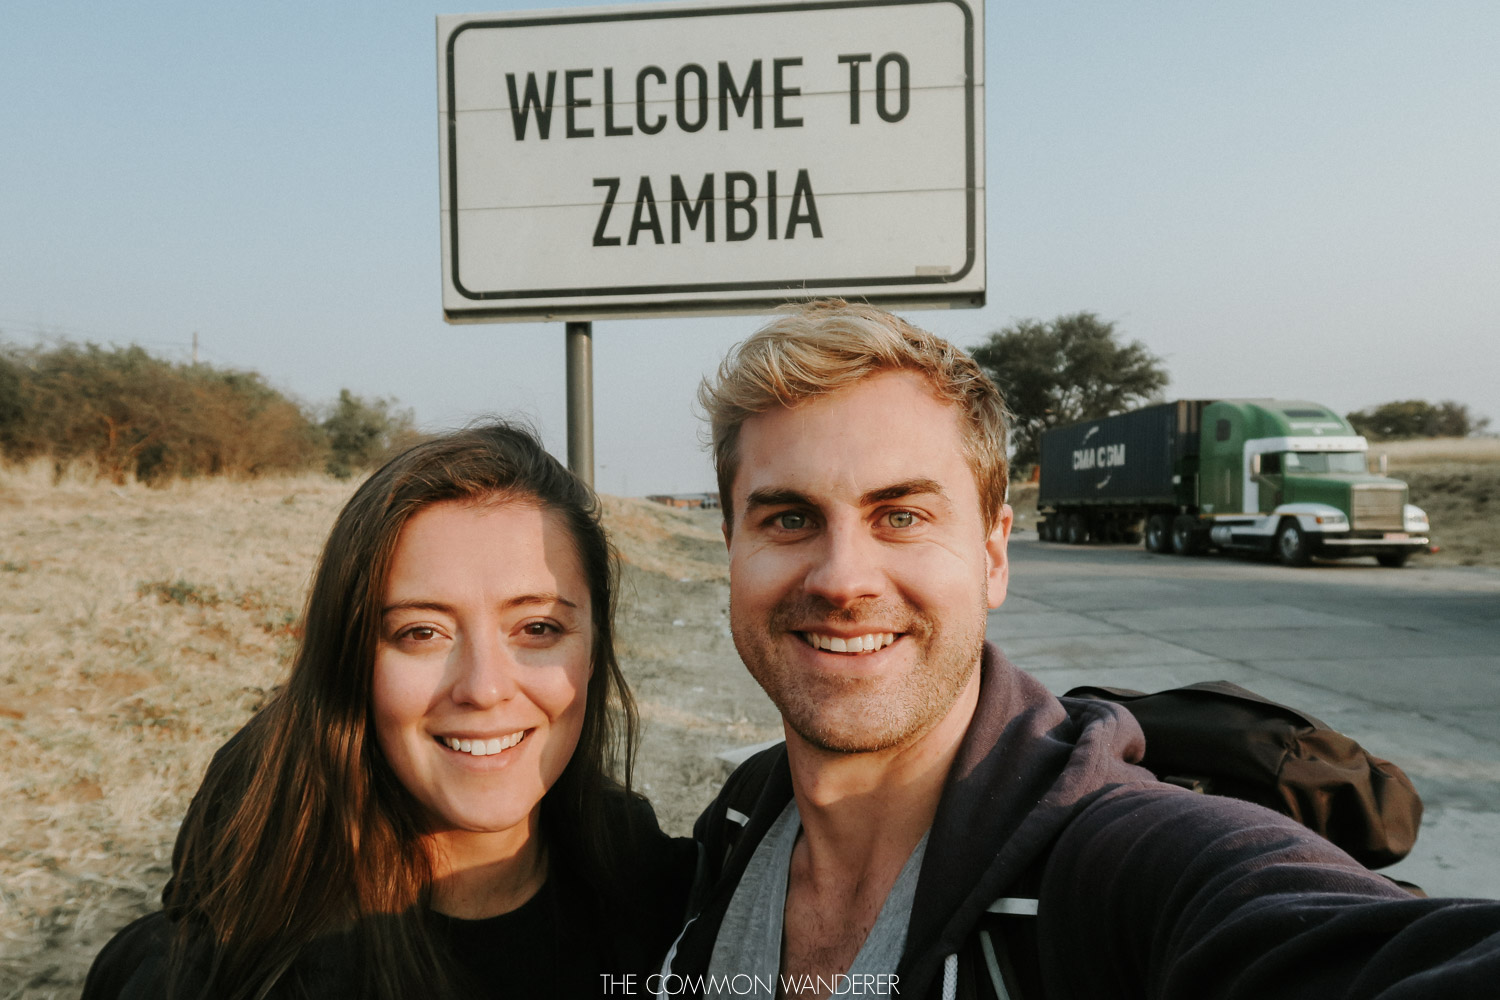 The Common Wanderer - Crossing the Namibian border into Zambia